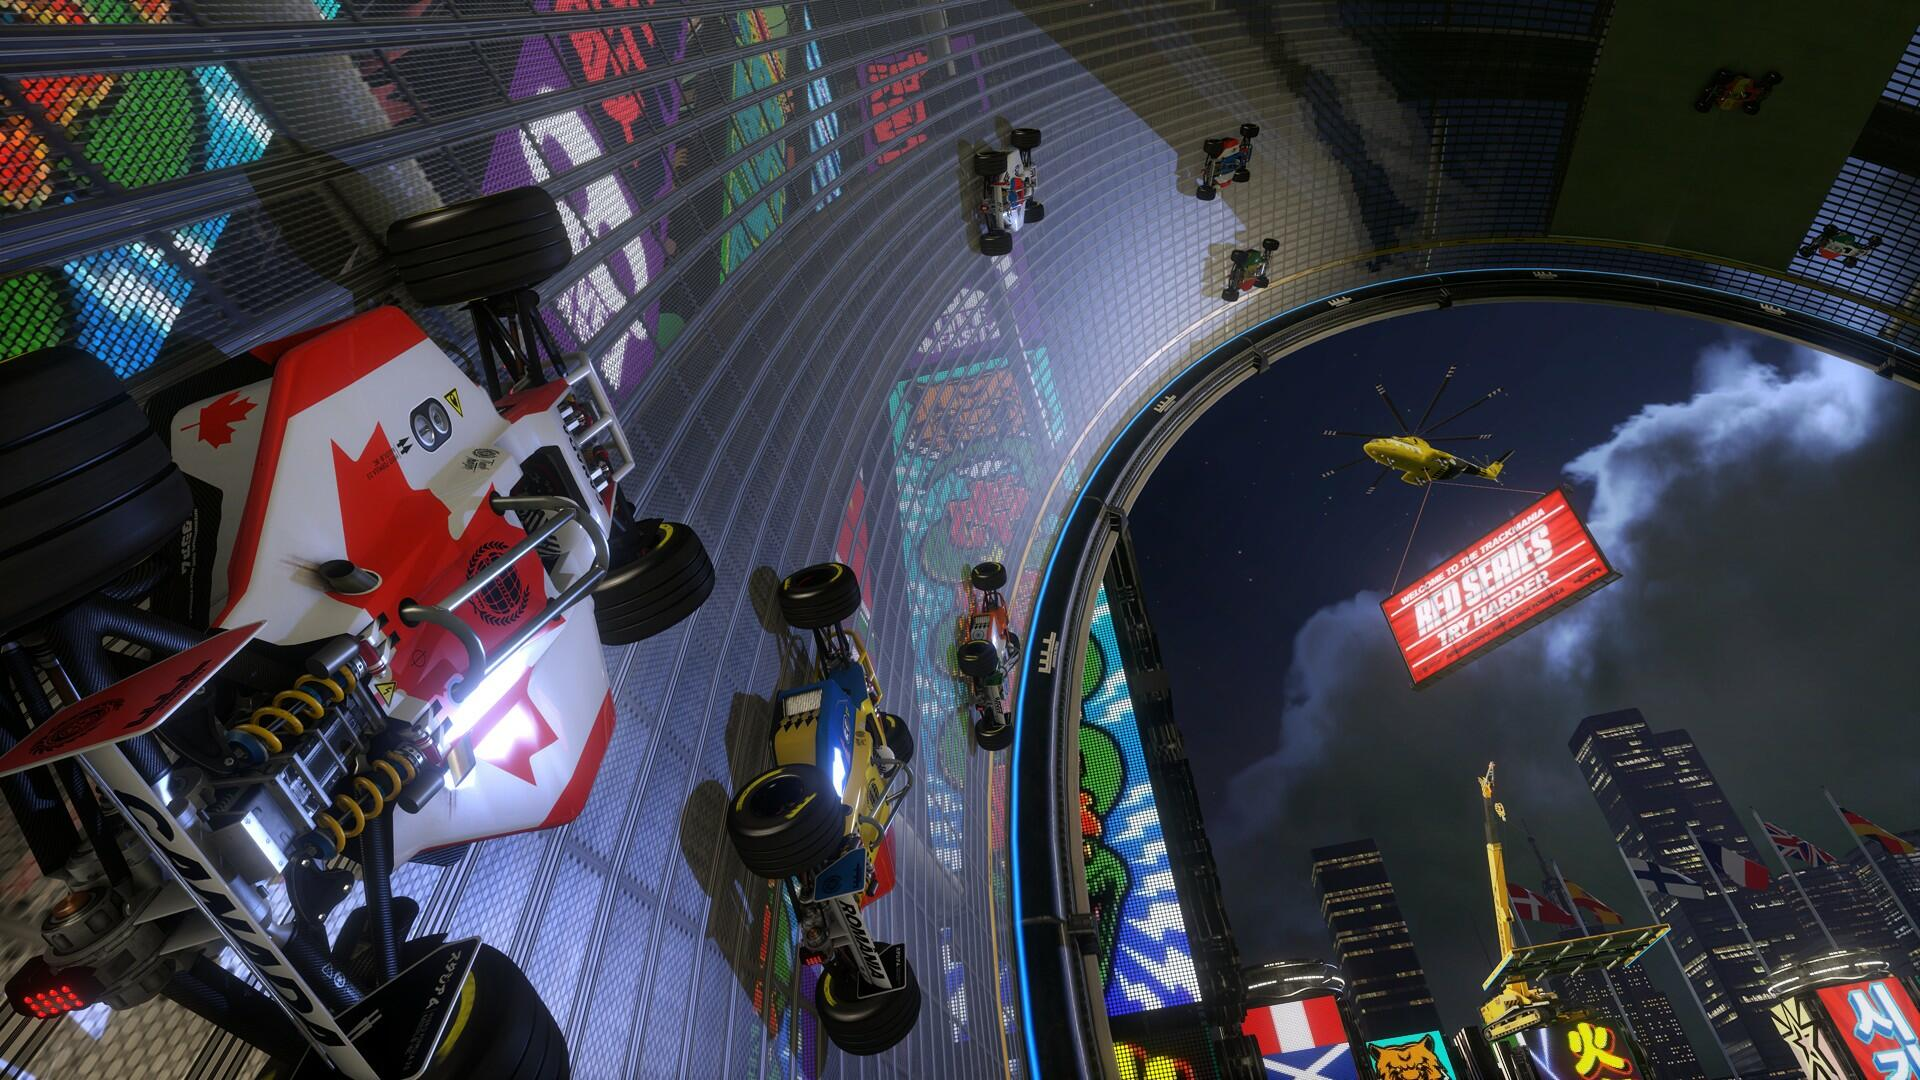 Trackmania Turbo PS4 Review: Pure Arcade Racing